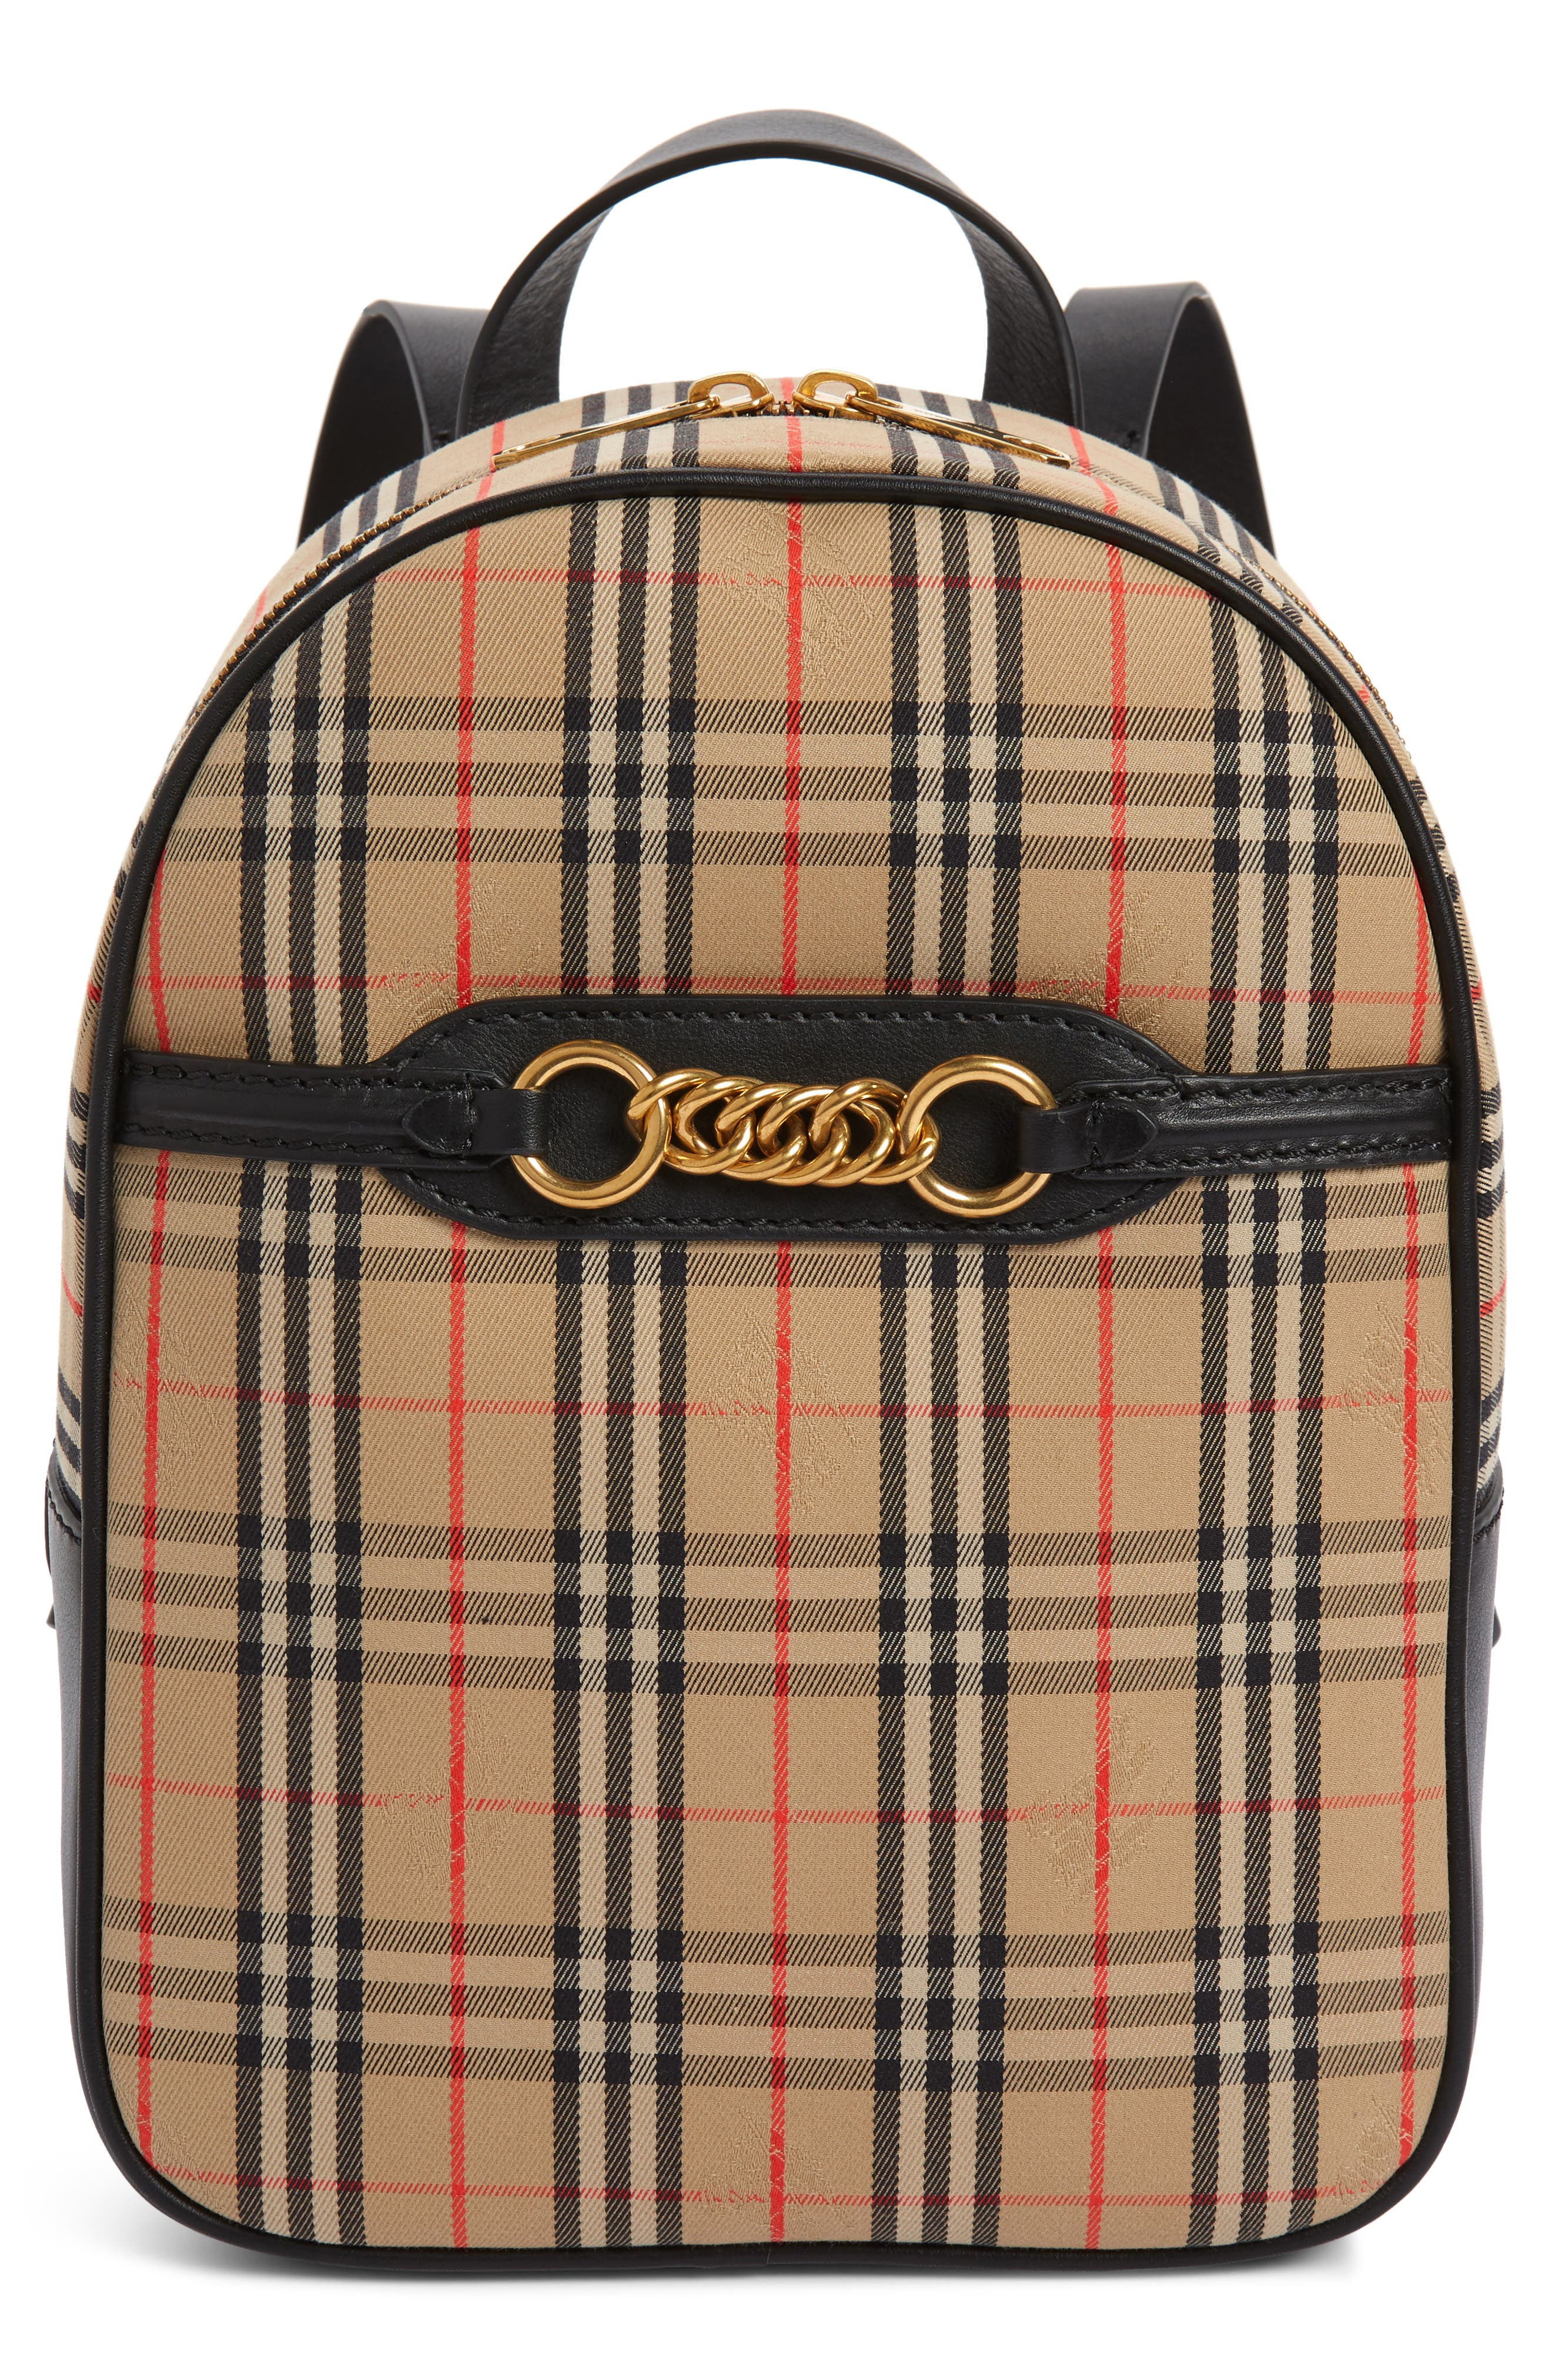 Link Vintage Check Canvas Backpack,                         Main,                         color, ANTIQUE YELLOW/ BLACK